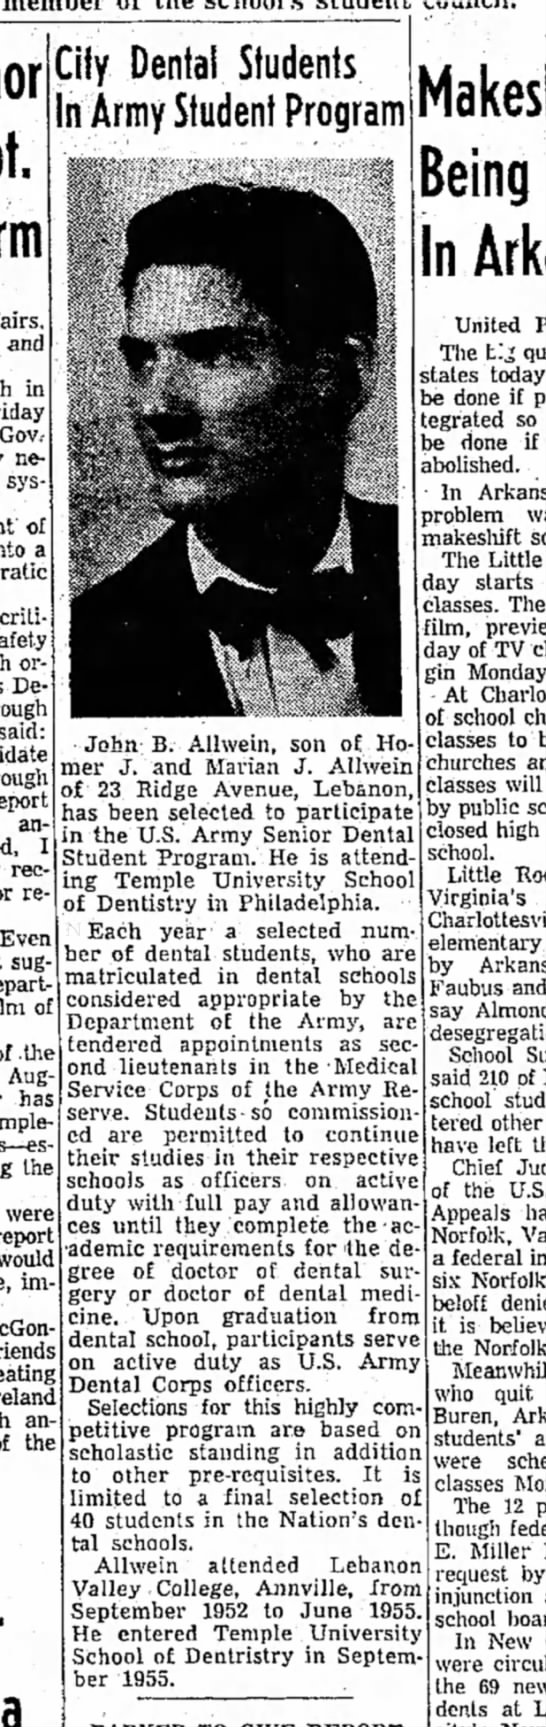 1958 September 20 John B. Allwein -